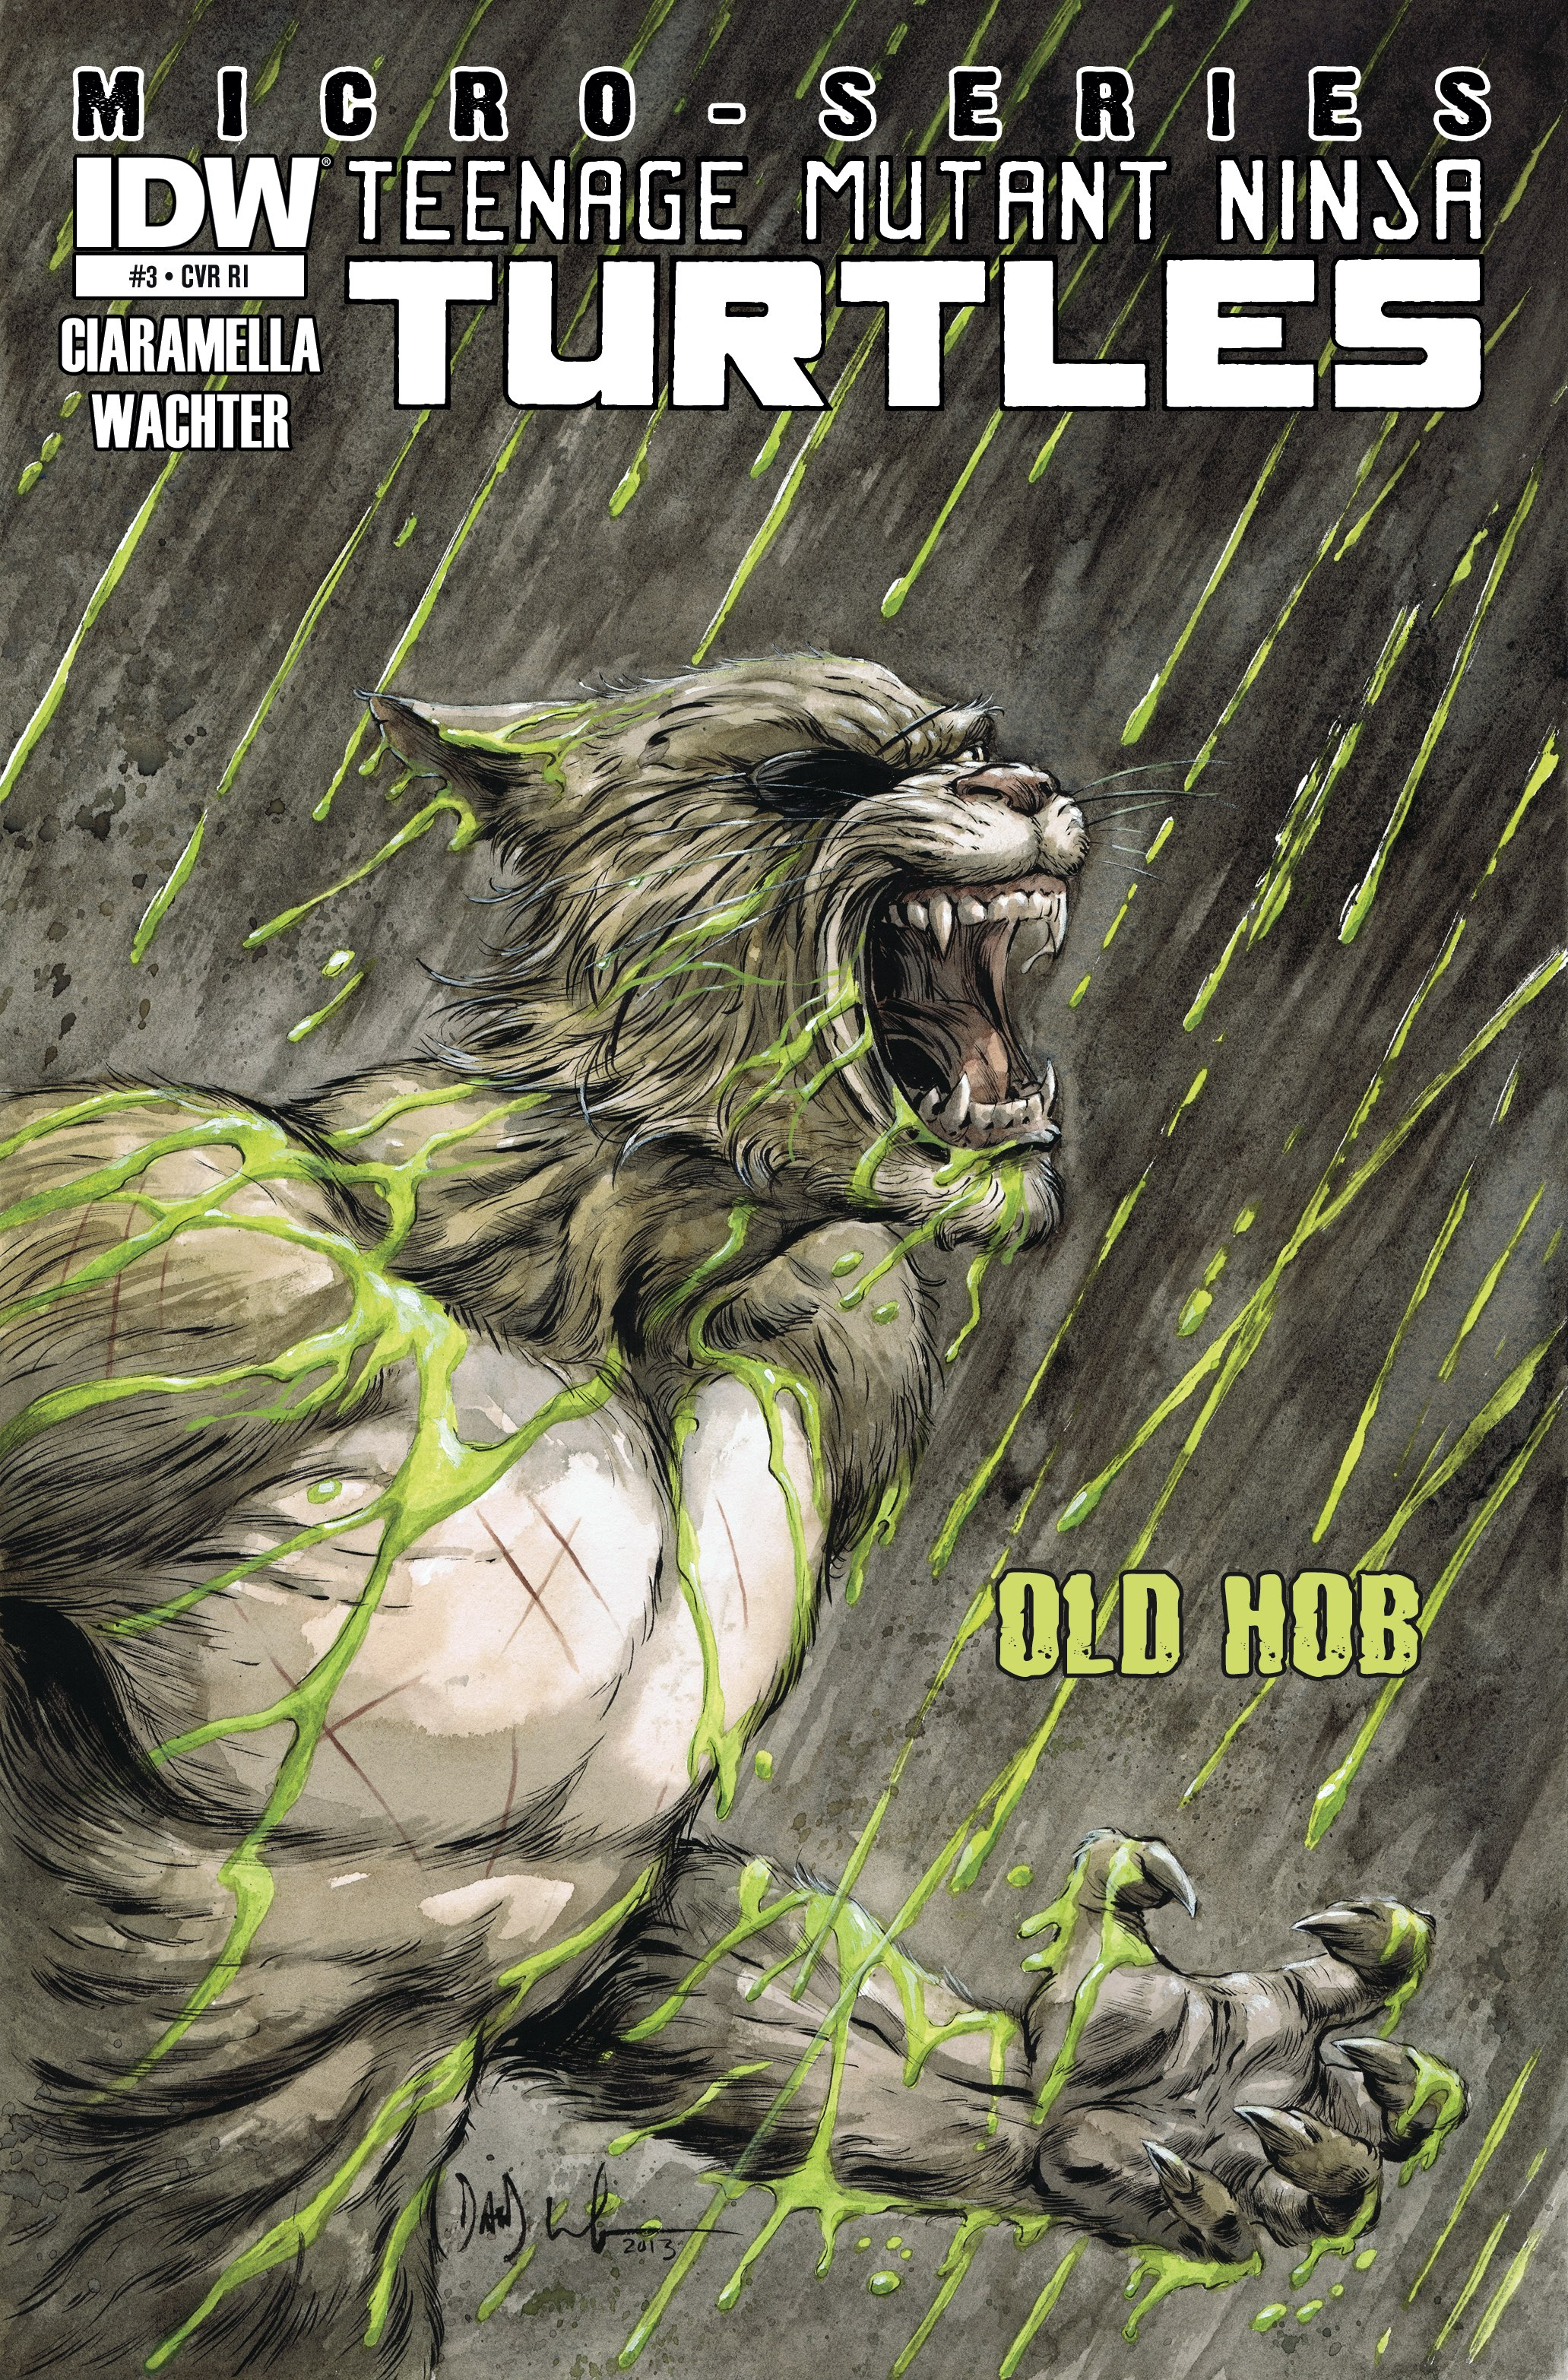 Old Hob (IDW)